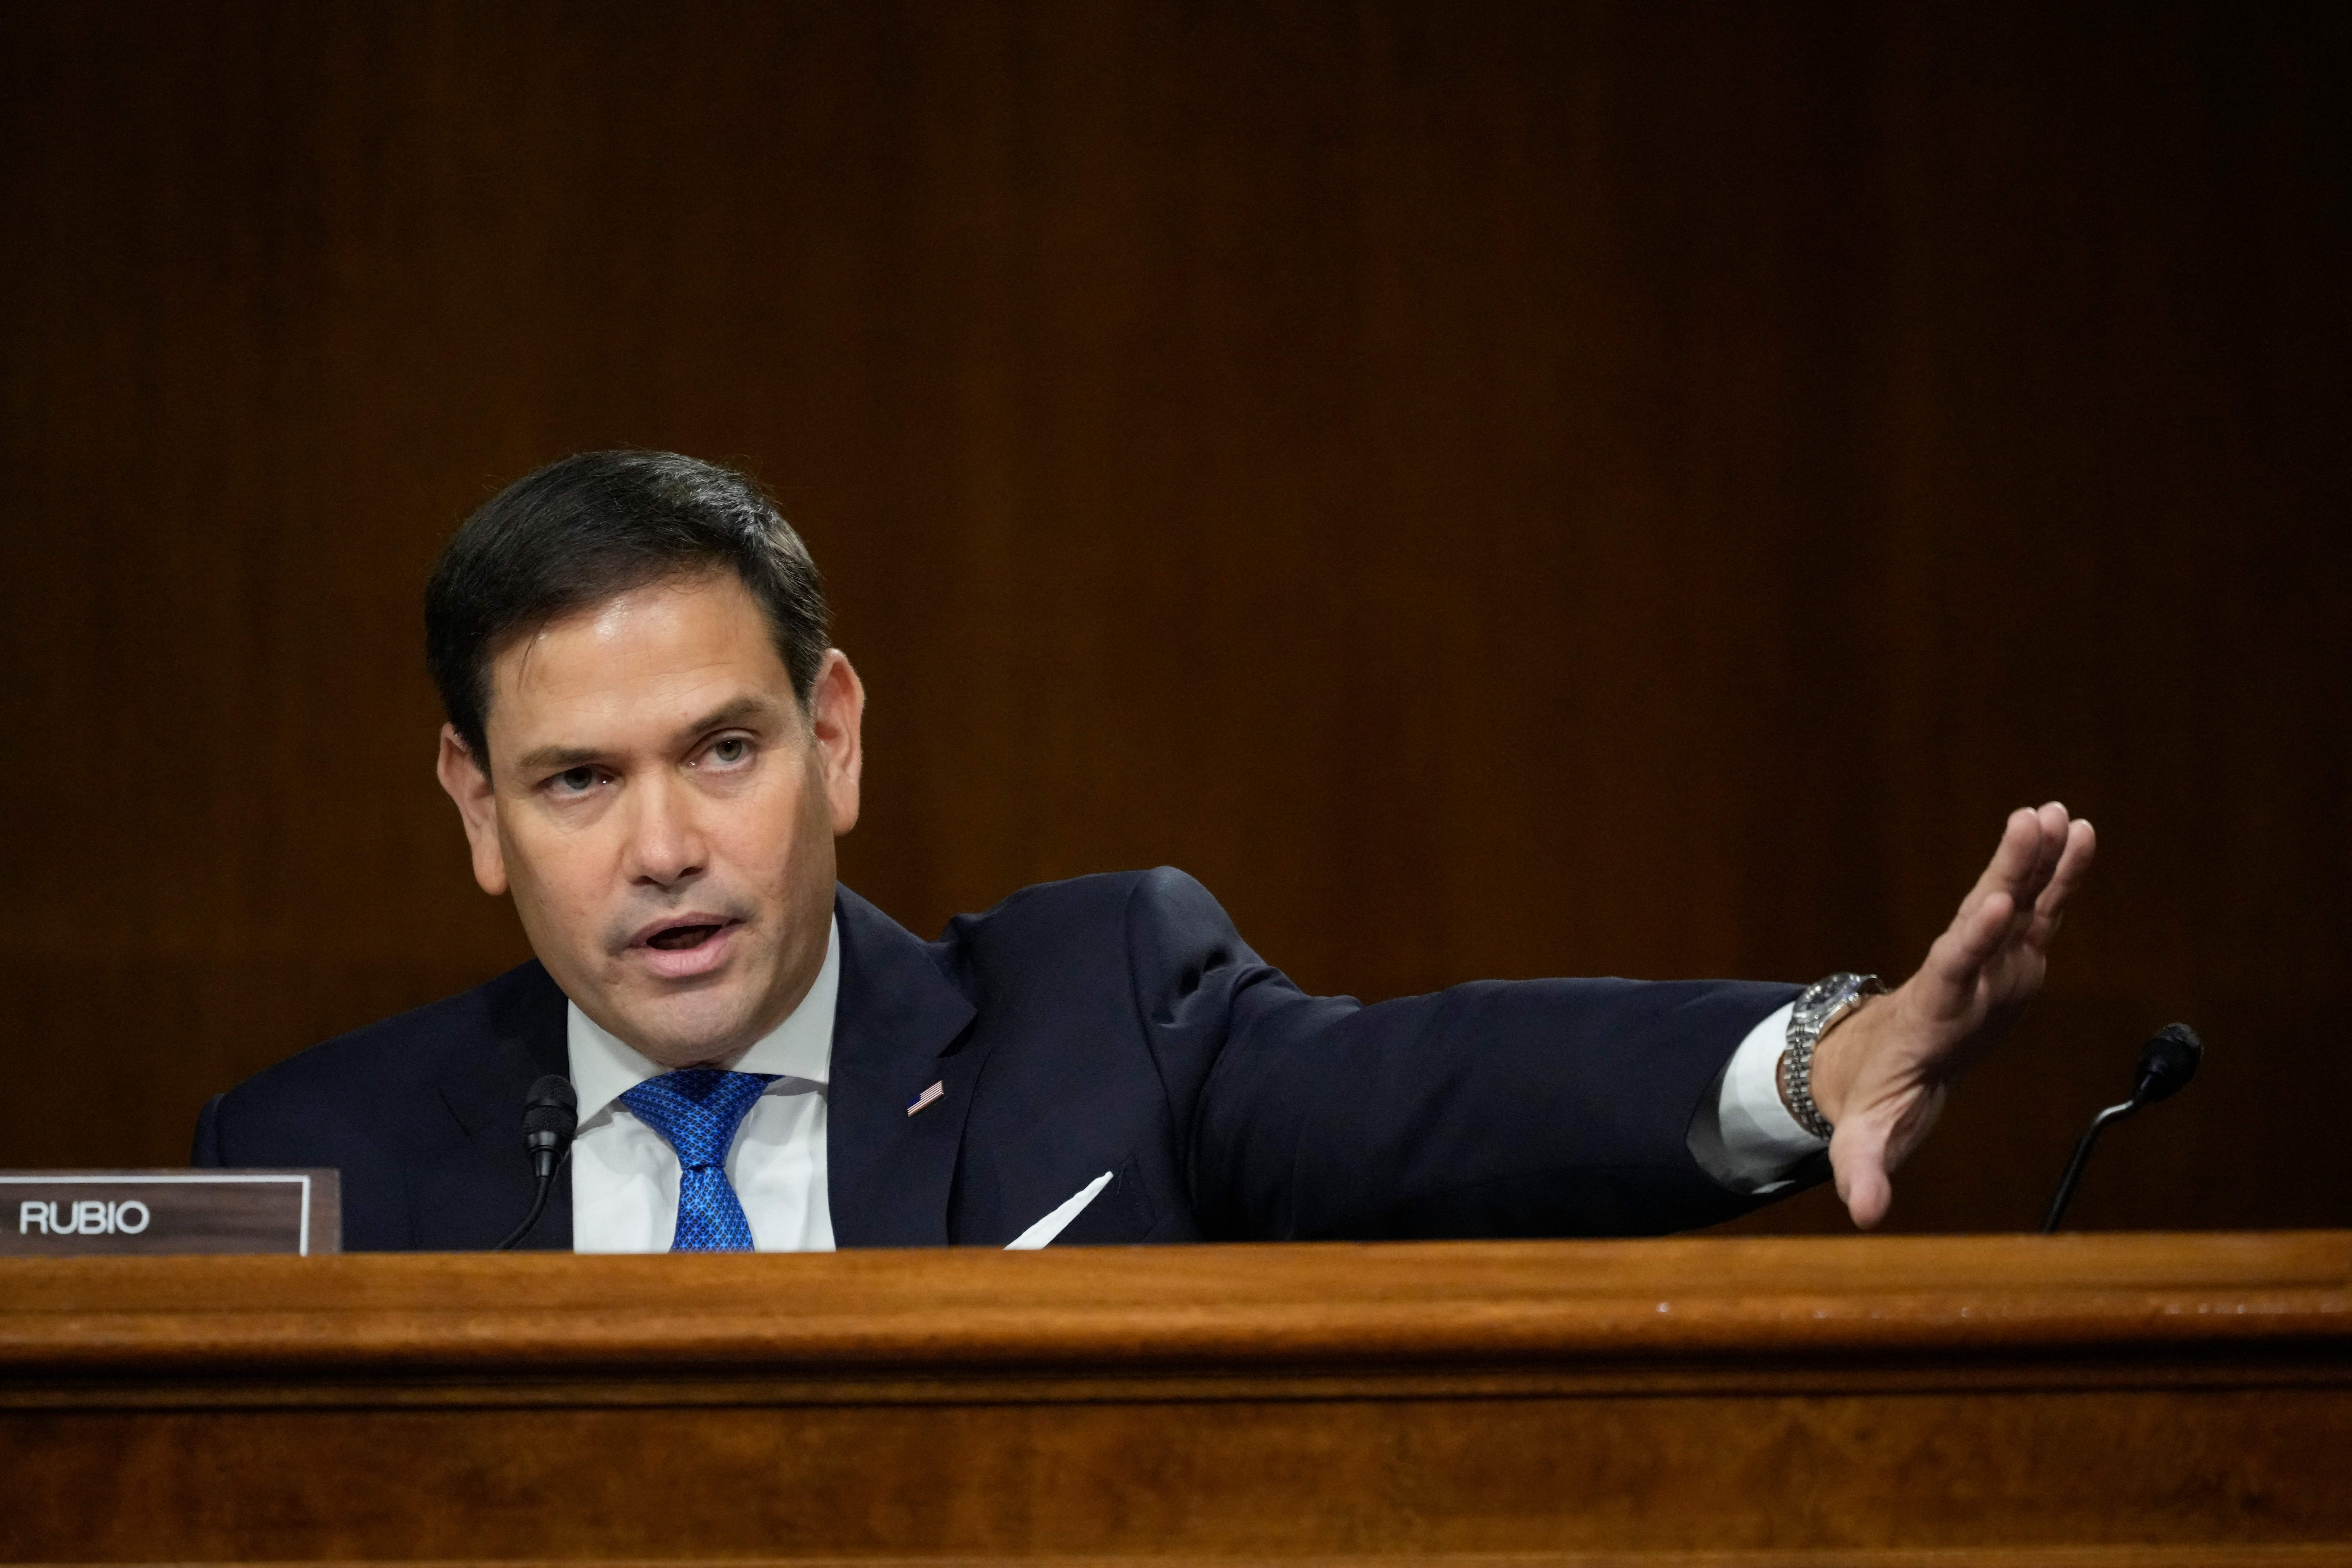 Sen. Marco Rubio (R-Fla.) questions US Secretary of State Antony Blinken during a Senate Foreign Relations Committee hearing on Capitol Hill in Washington, D.C. (Photo by DREW ANGERER/POOL/AFP via Getty Images)